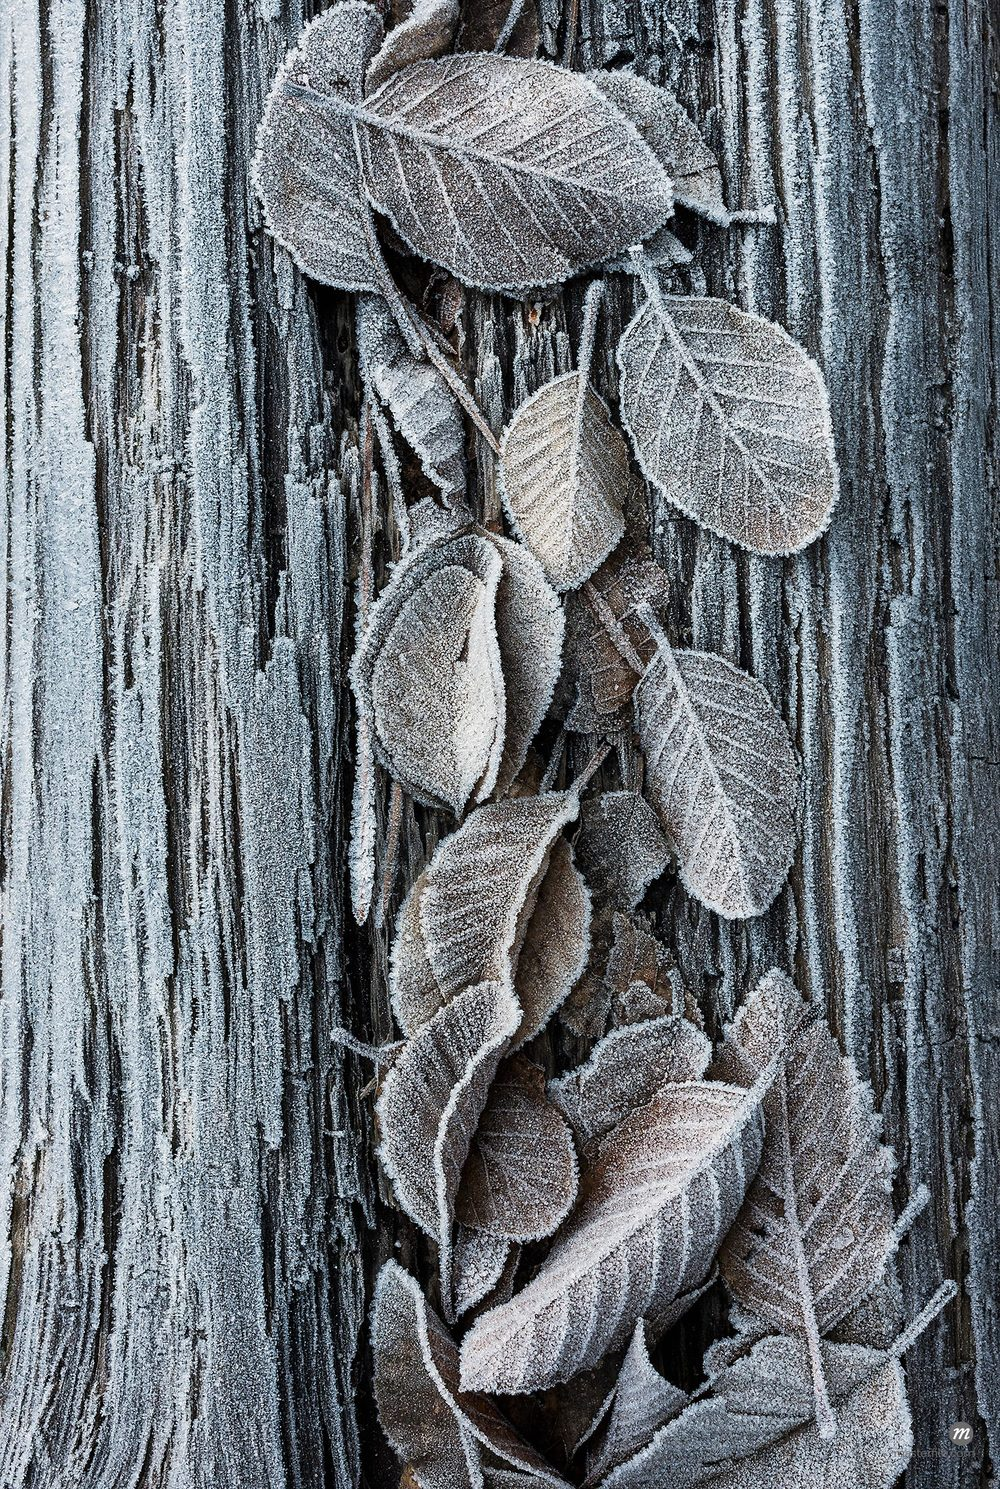 Close-up of frosted leaves on a tree trunk in winter, Wareham Forest, Dorset, England © JW / Masterfile